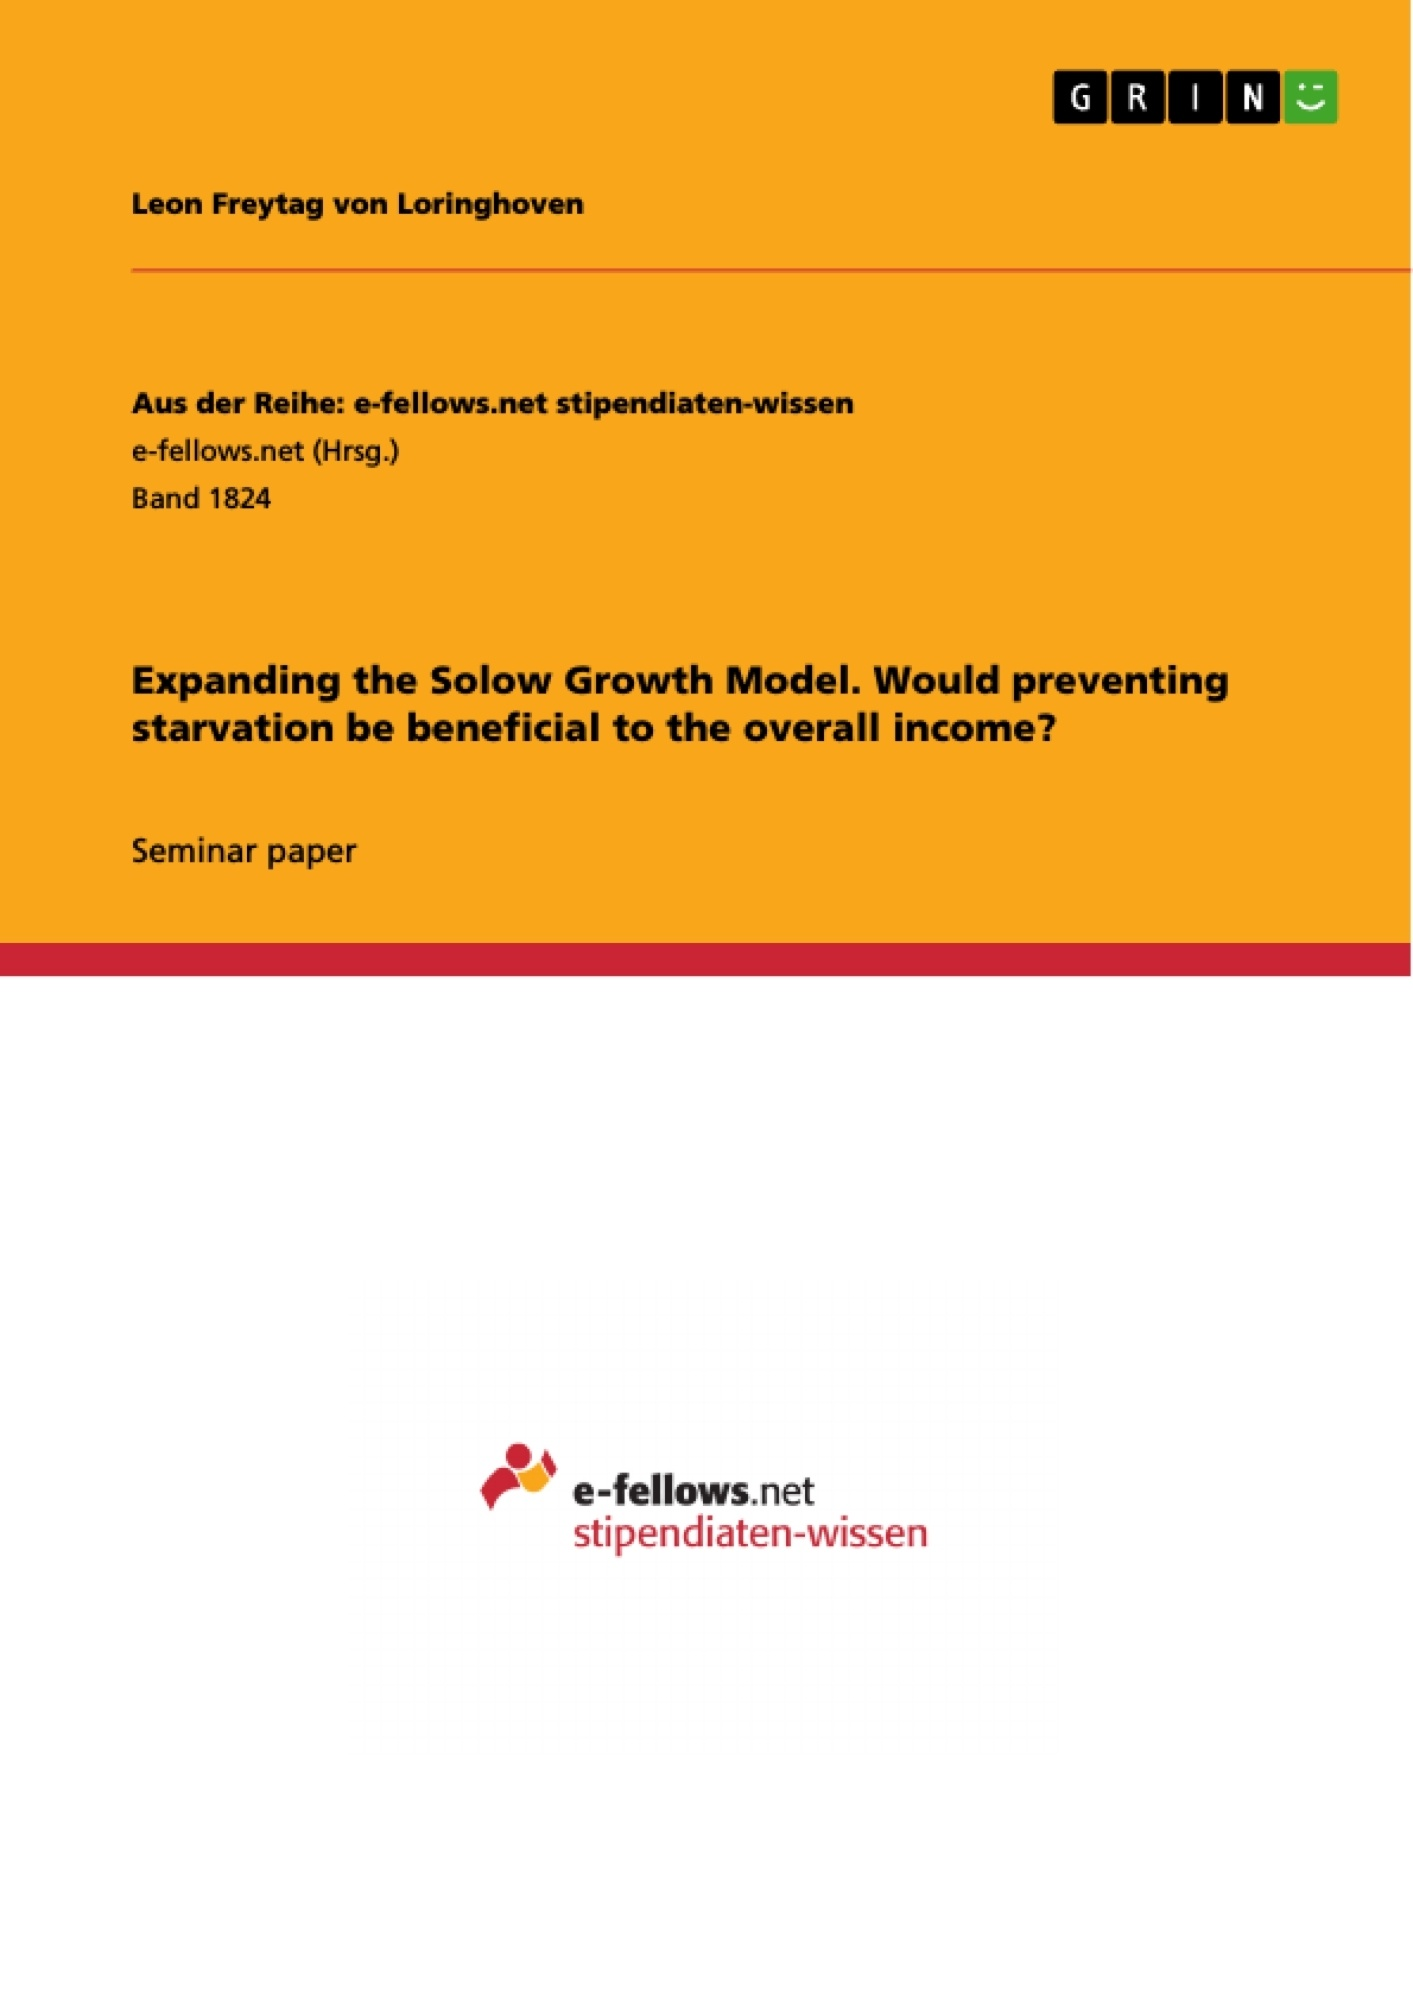 Title: Expanding the Solow Growth Model. Would preventing starvation be beneficial to the overall income?